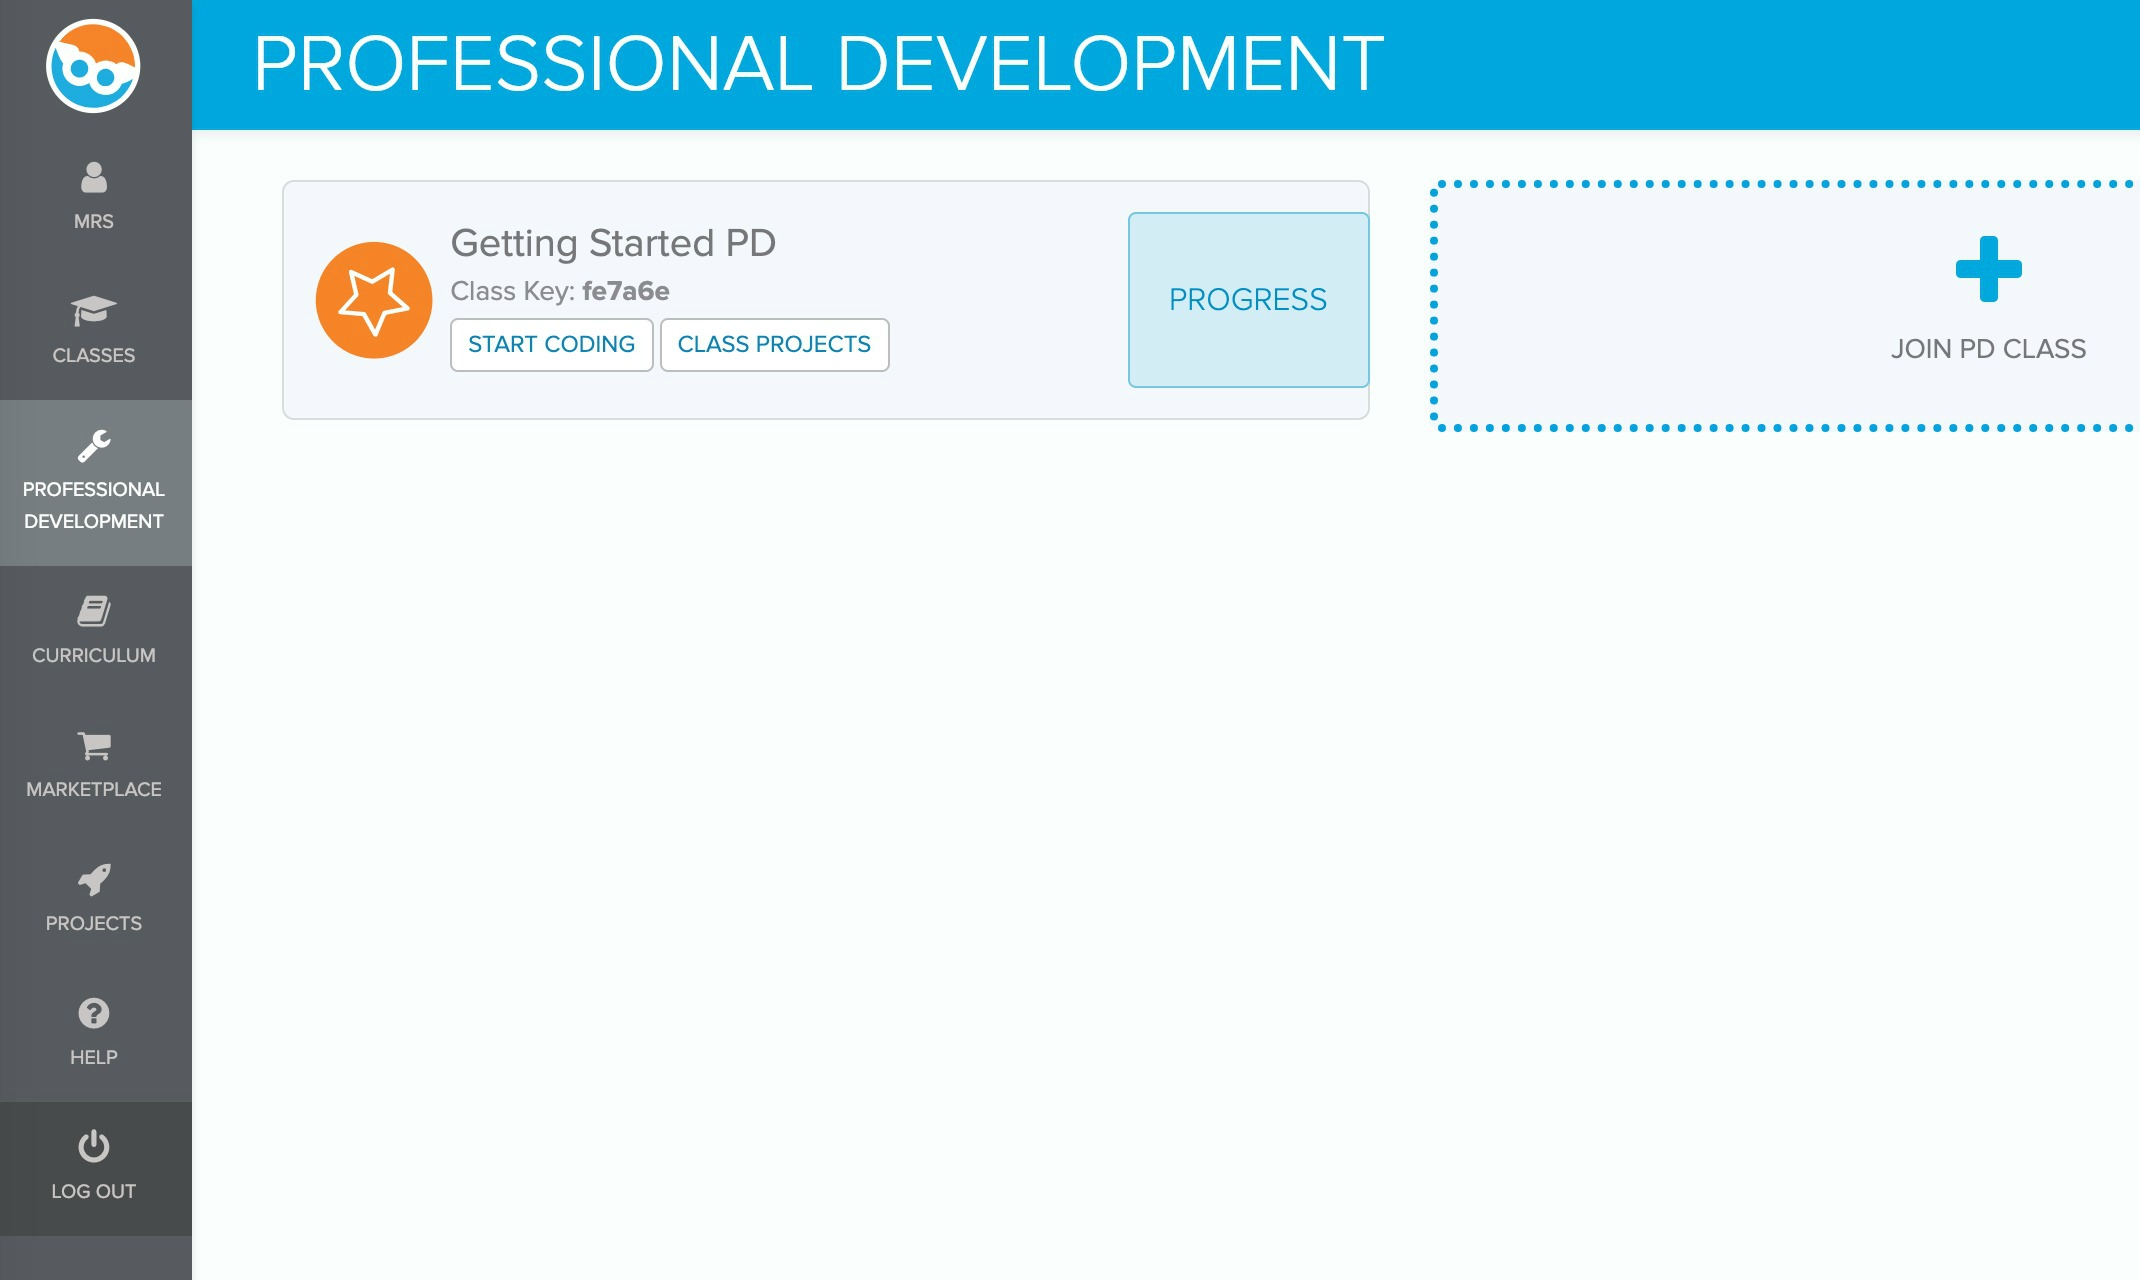 Screenshot of professional development course